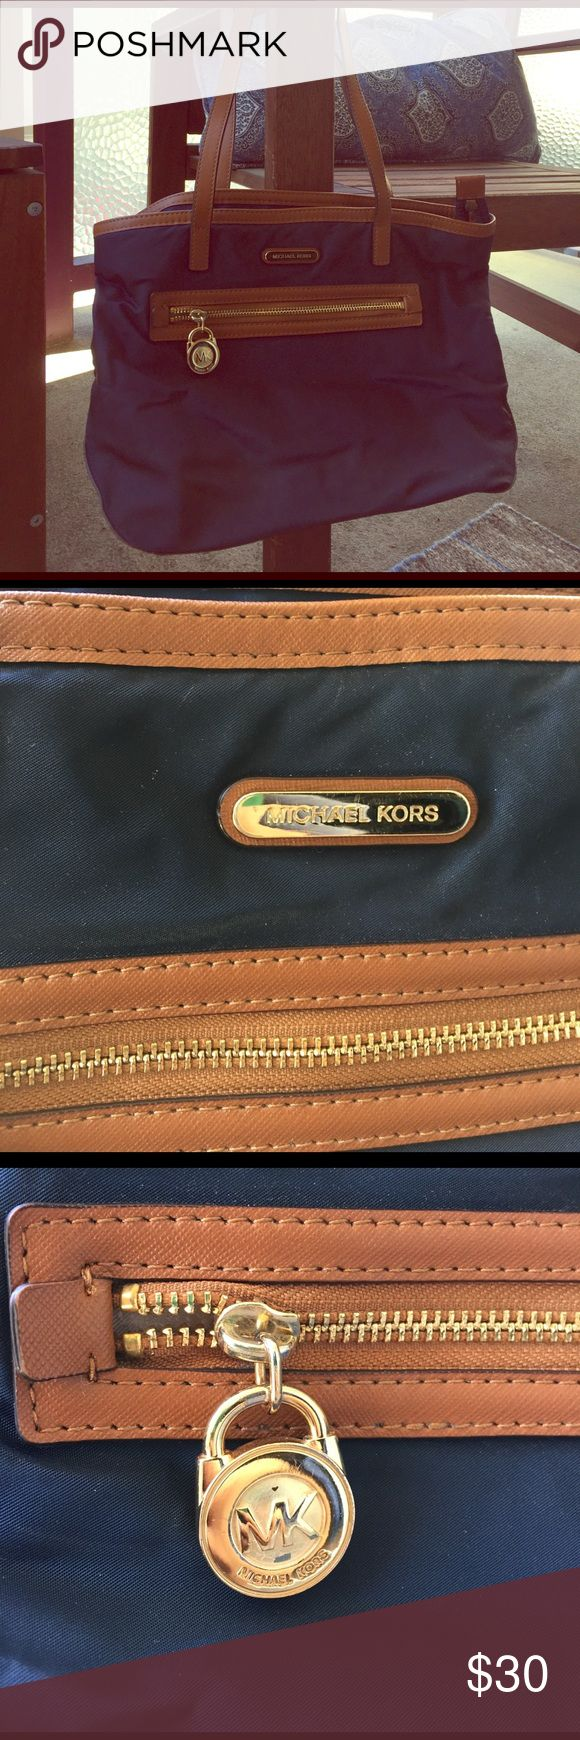 Michael Kors navy purse Michael Kors Navy purse. Marks as shown - otherwise great condition! Michael Kors Bags Shoulder Bags